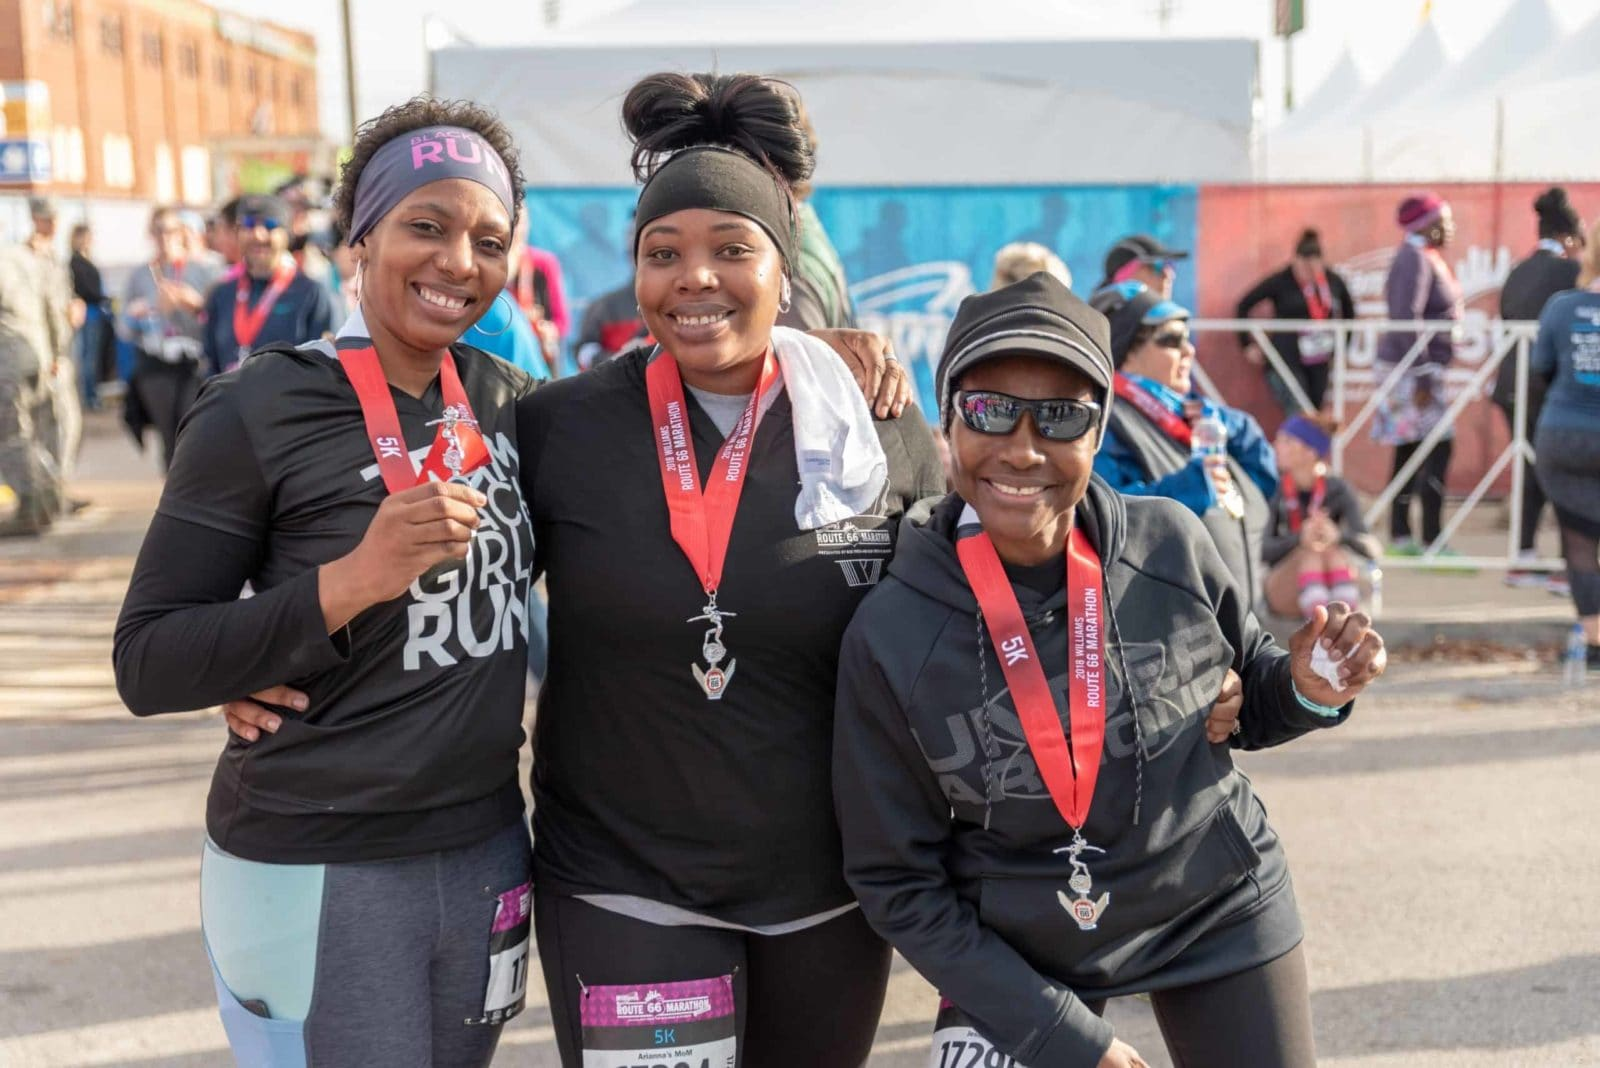 route 66 marathon photos